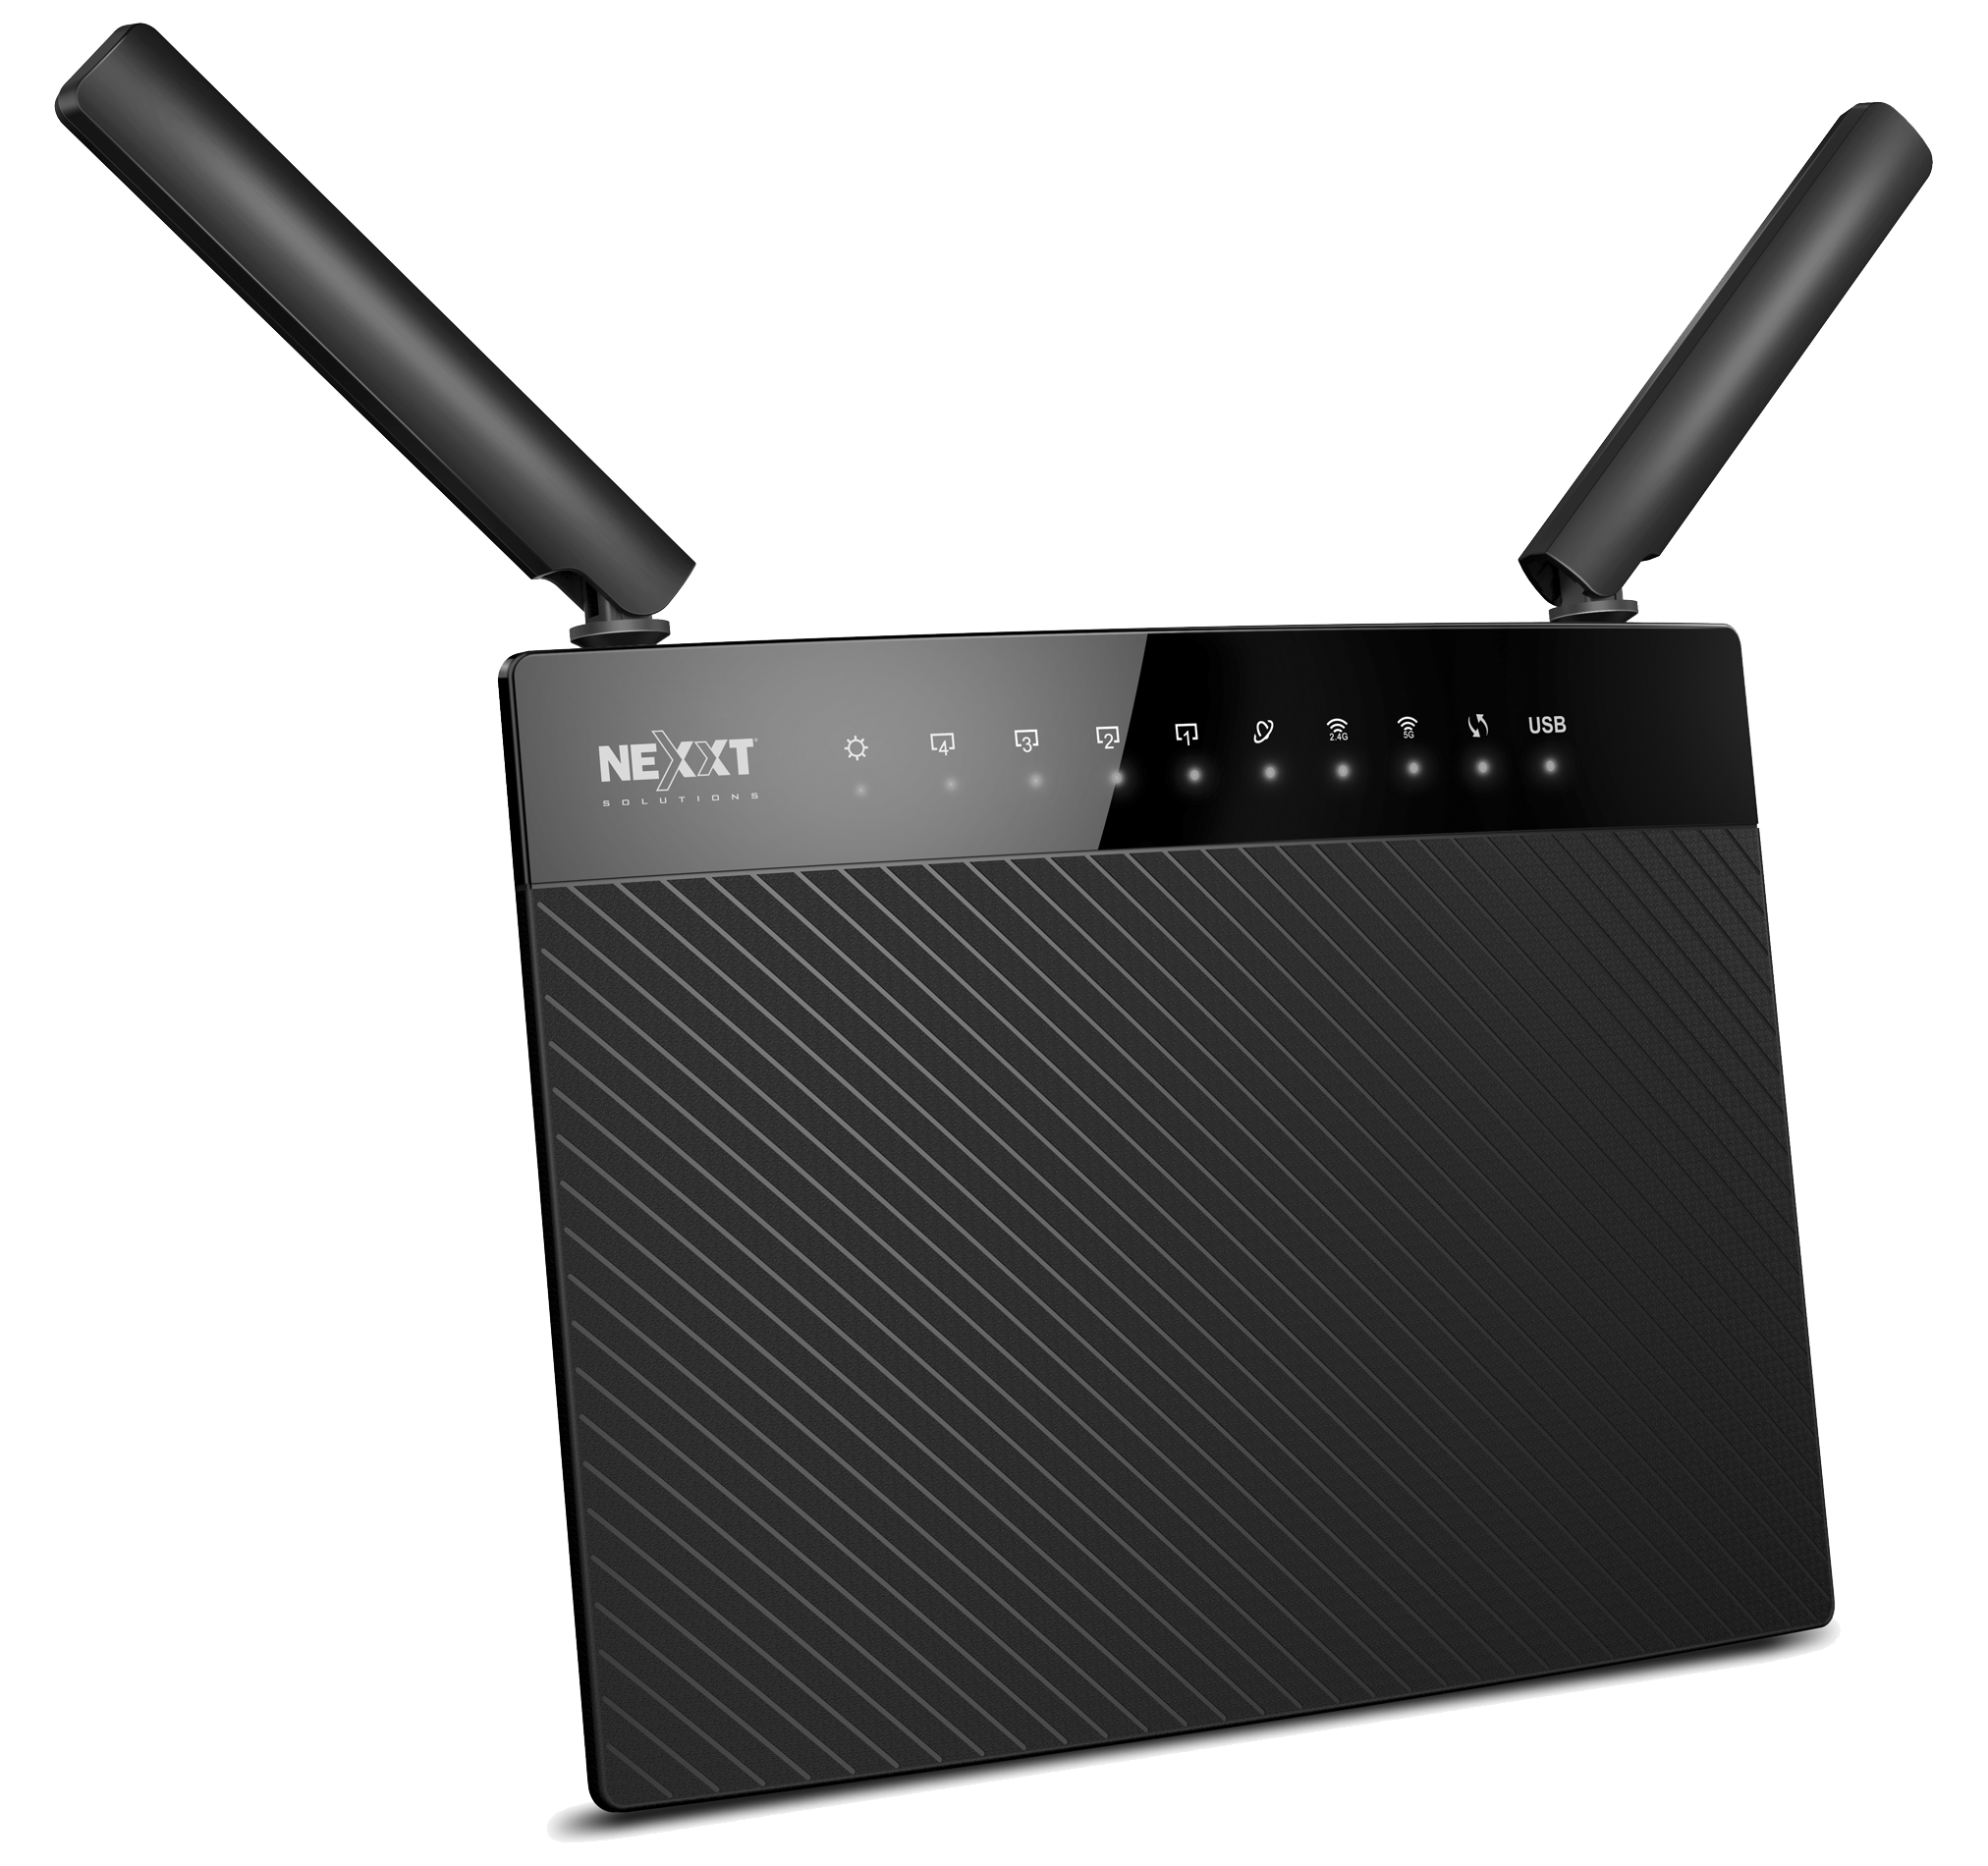 Nexxt Stealth 300 Router Driver Download